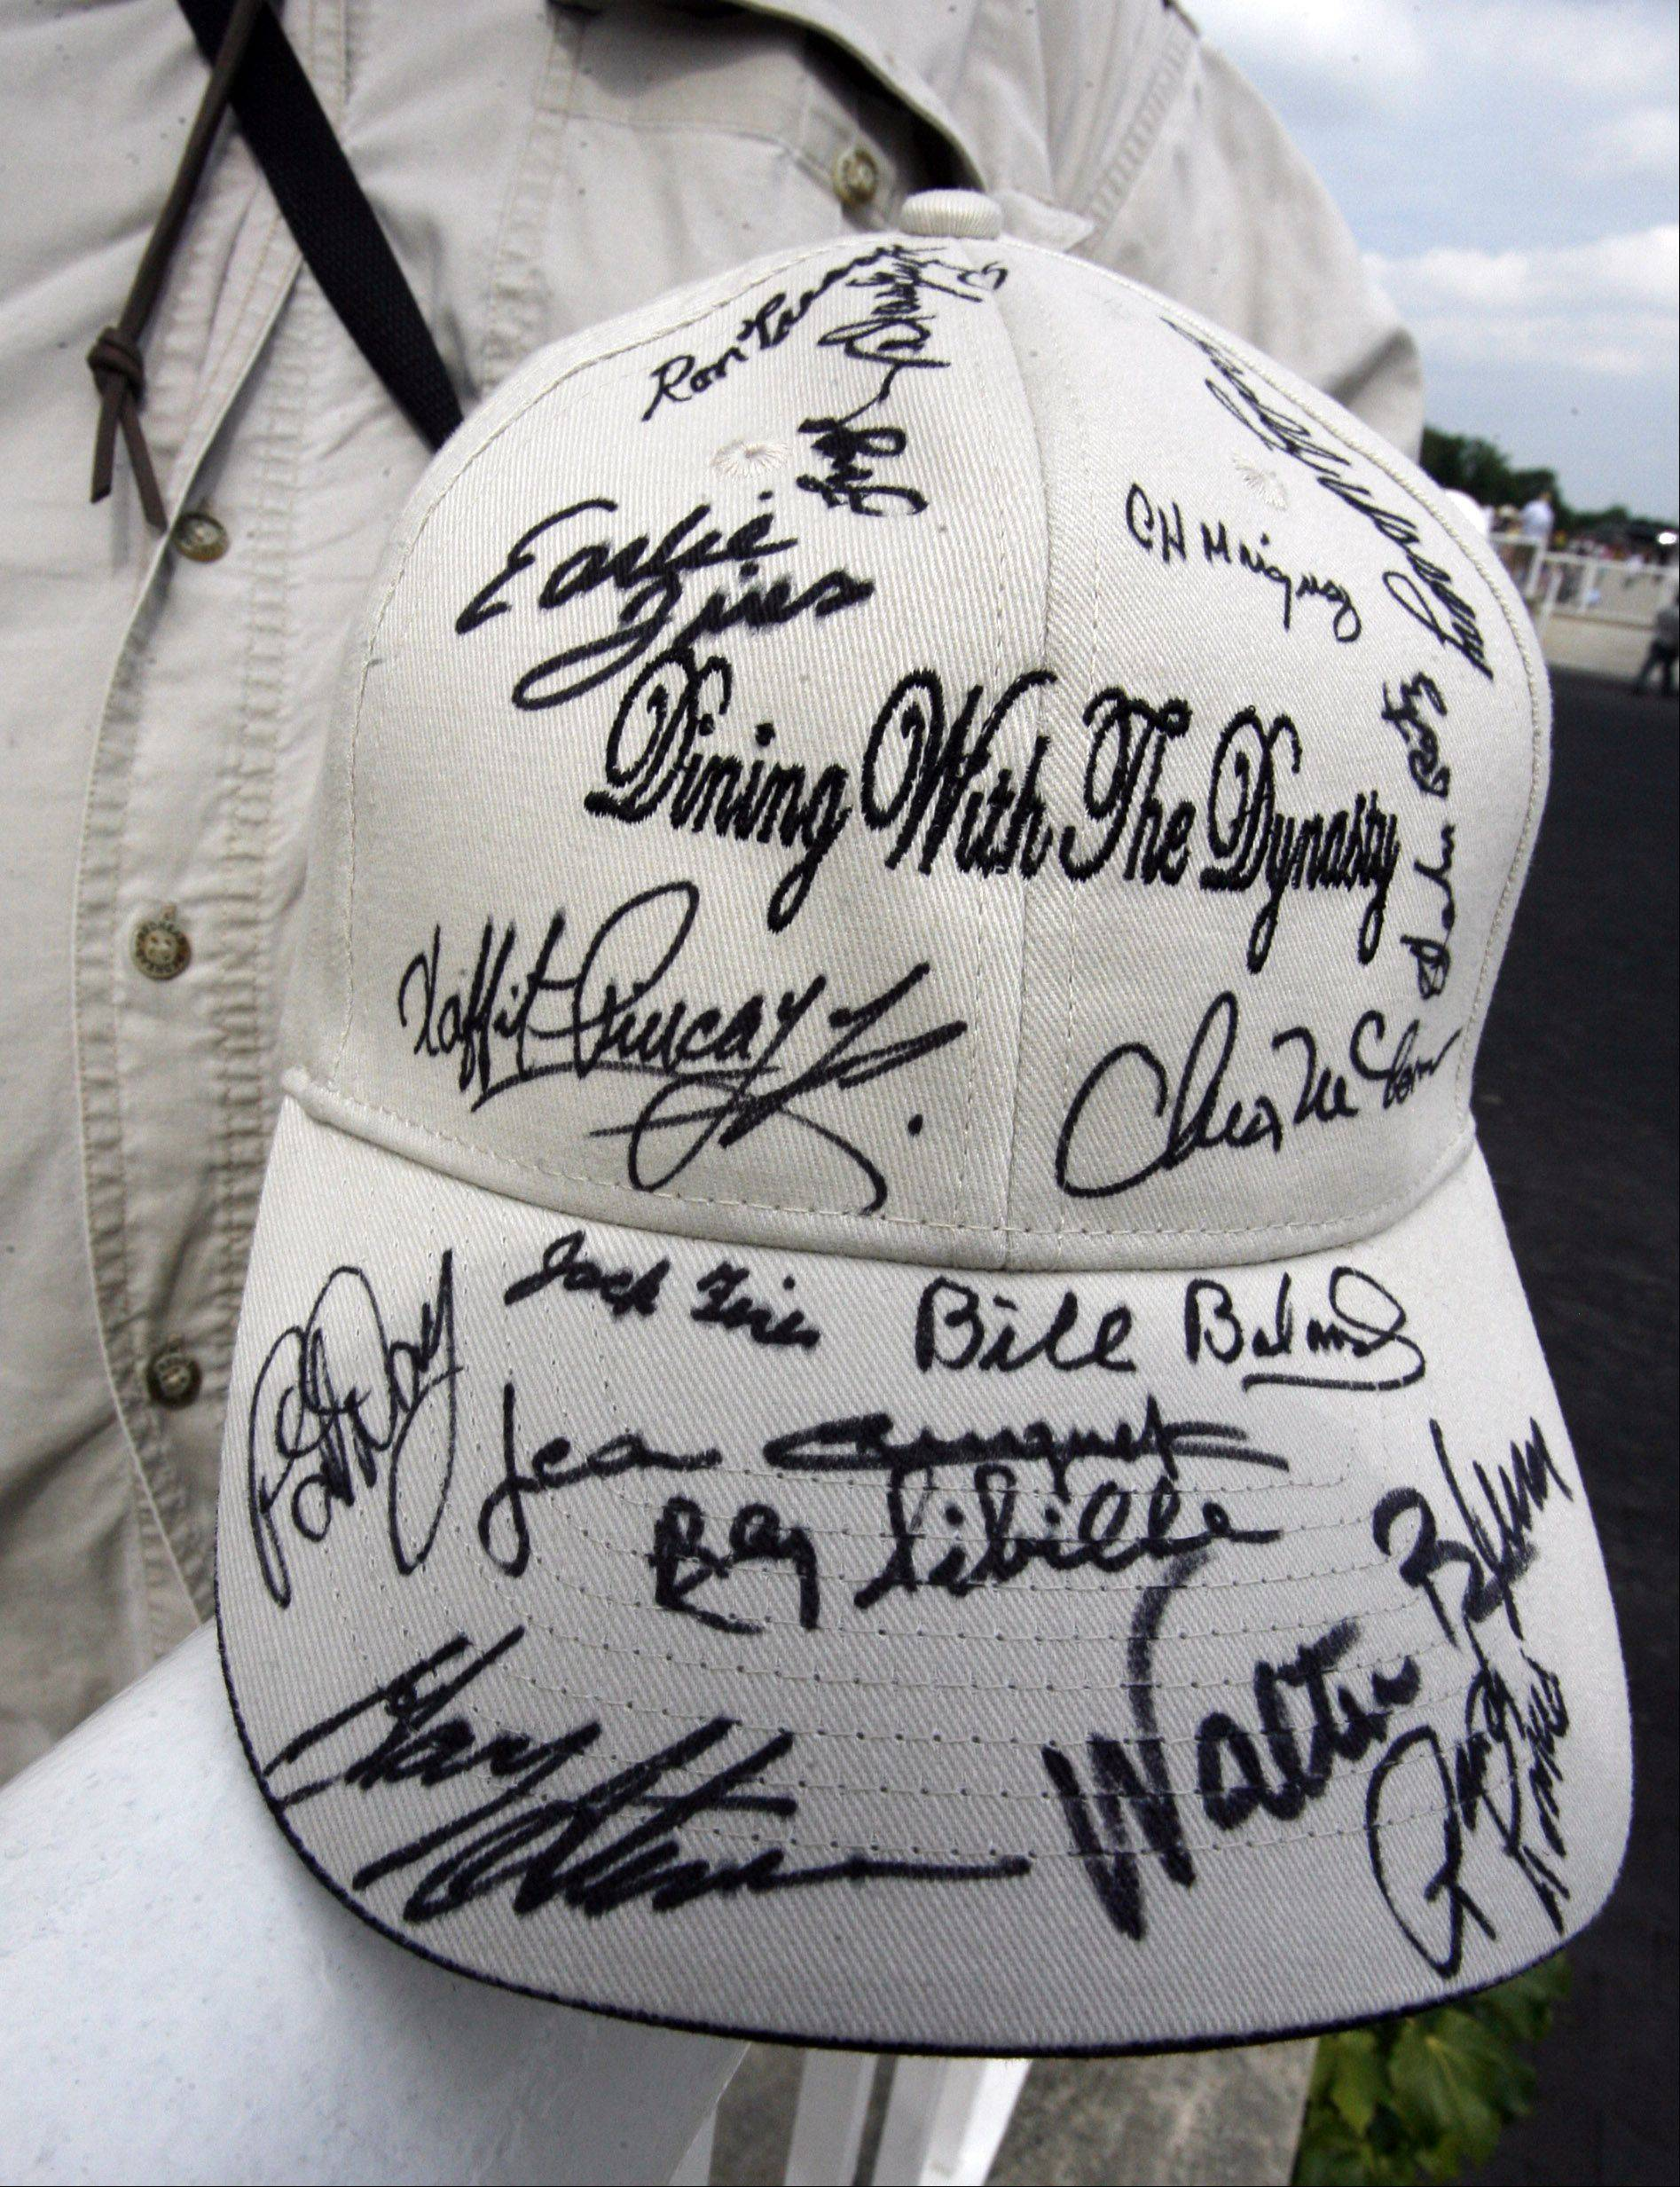 Mike Polk of Park Ridge brought his lucky jockey autographed hat to hold during the 27th Arlington Million .